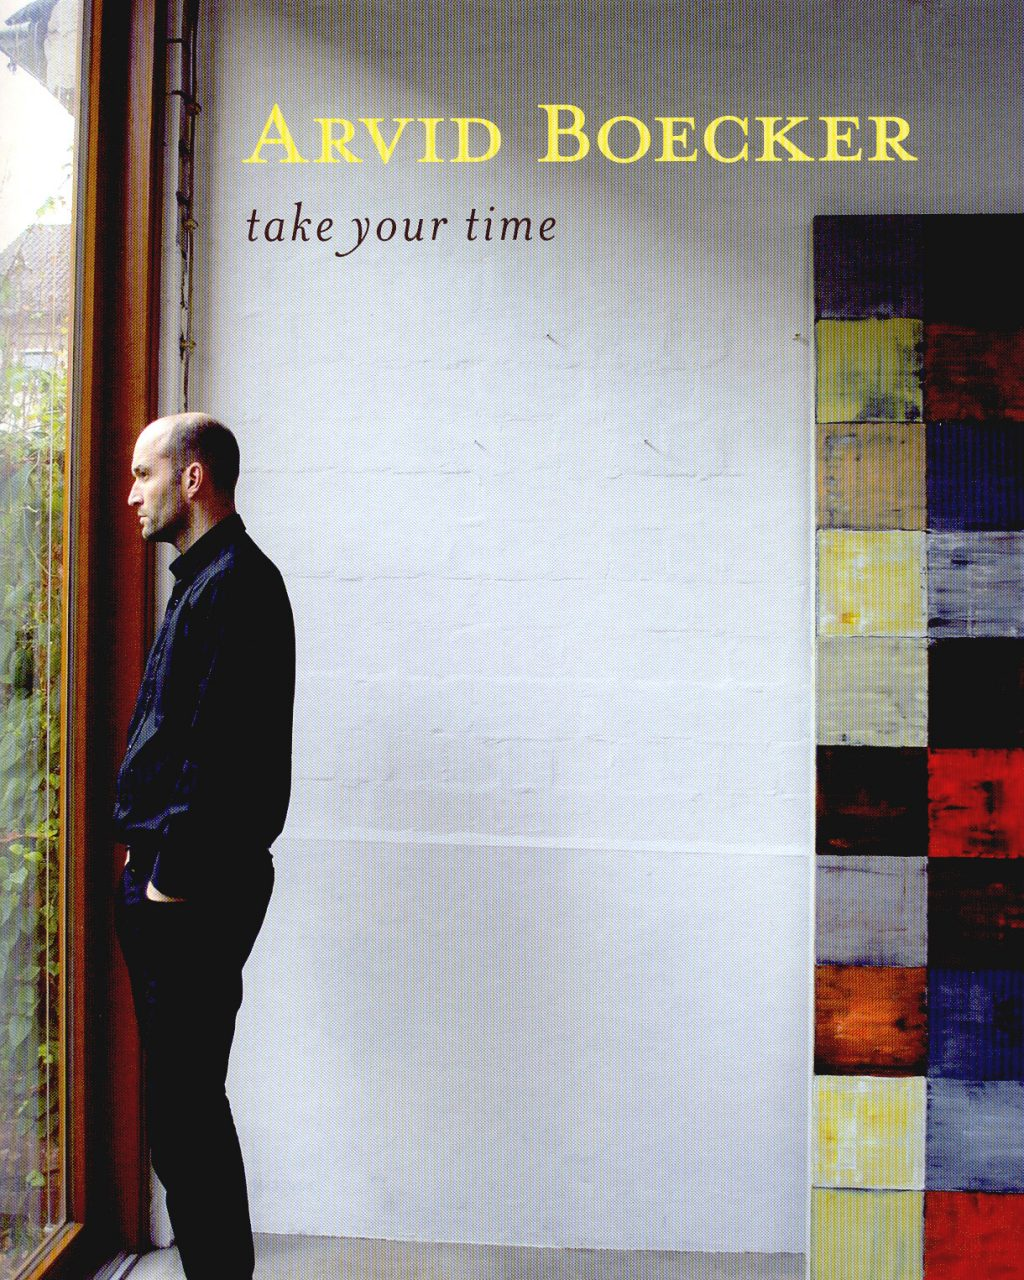 ARVID BOECKER. TAKE YOUR TIME